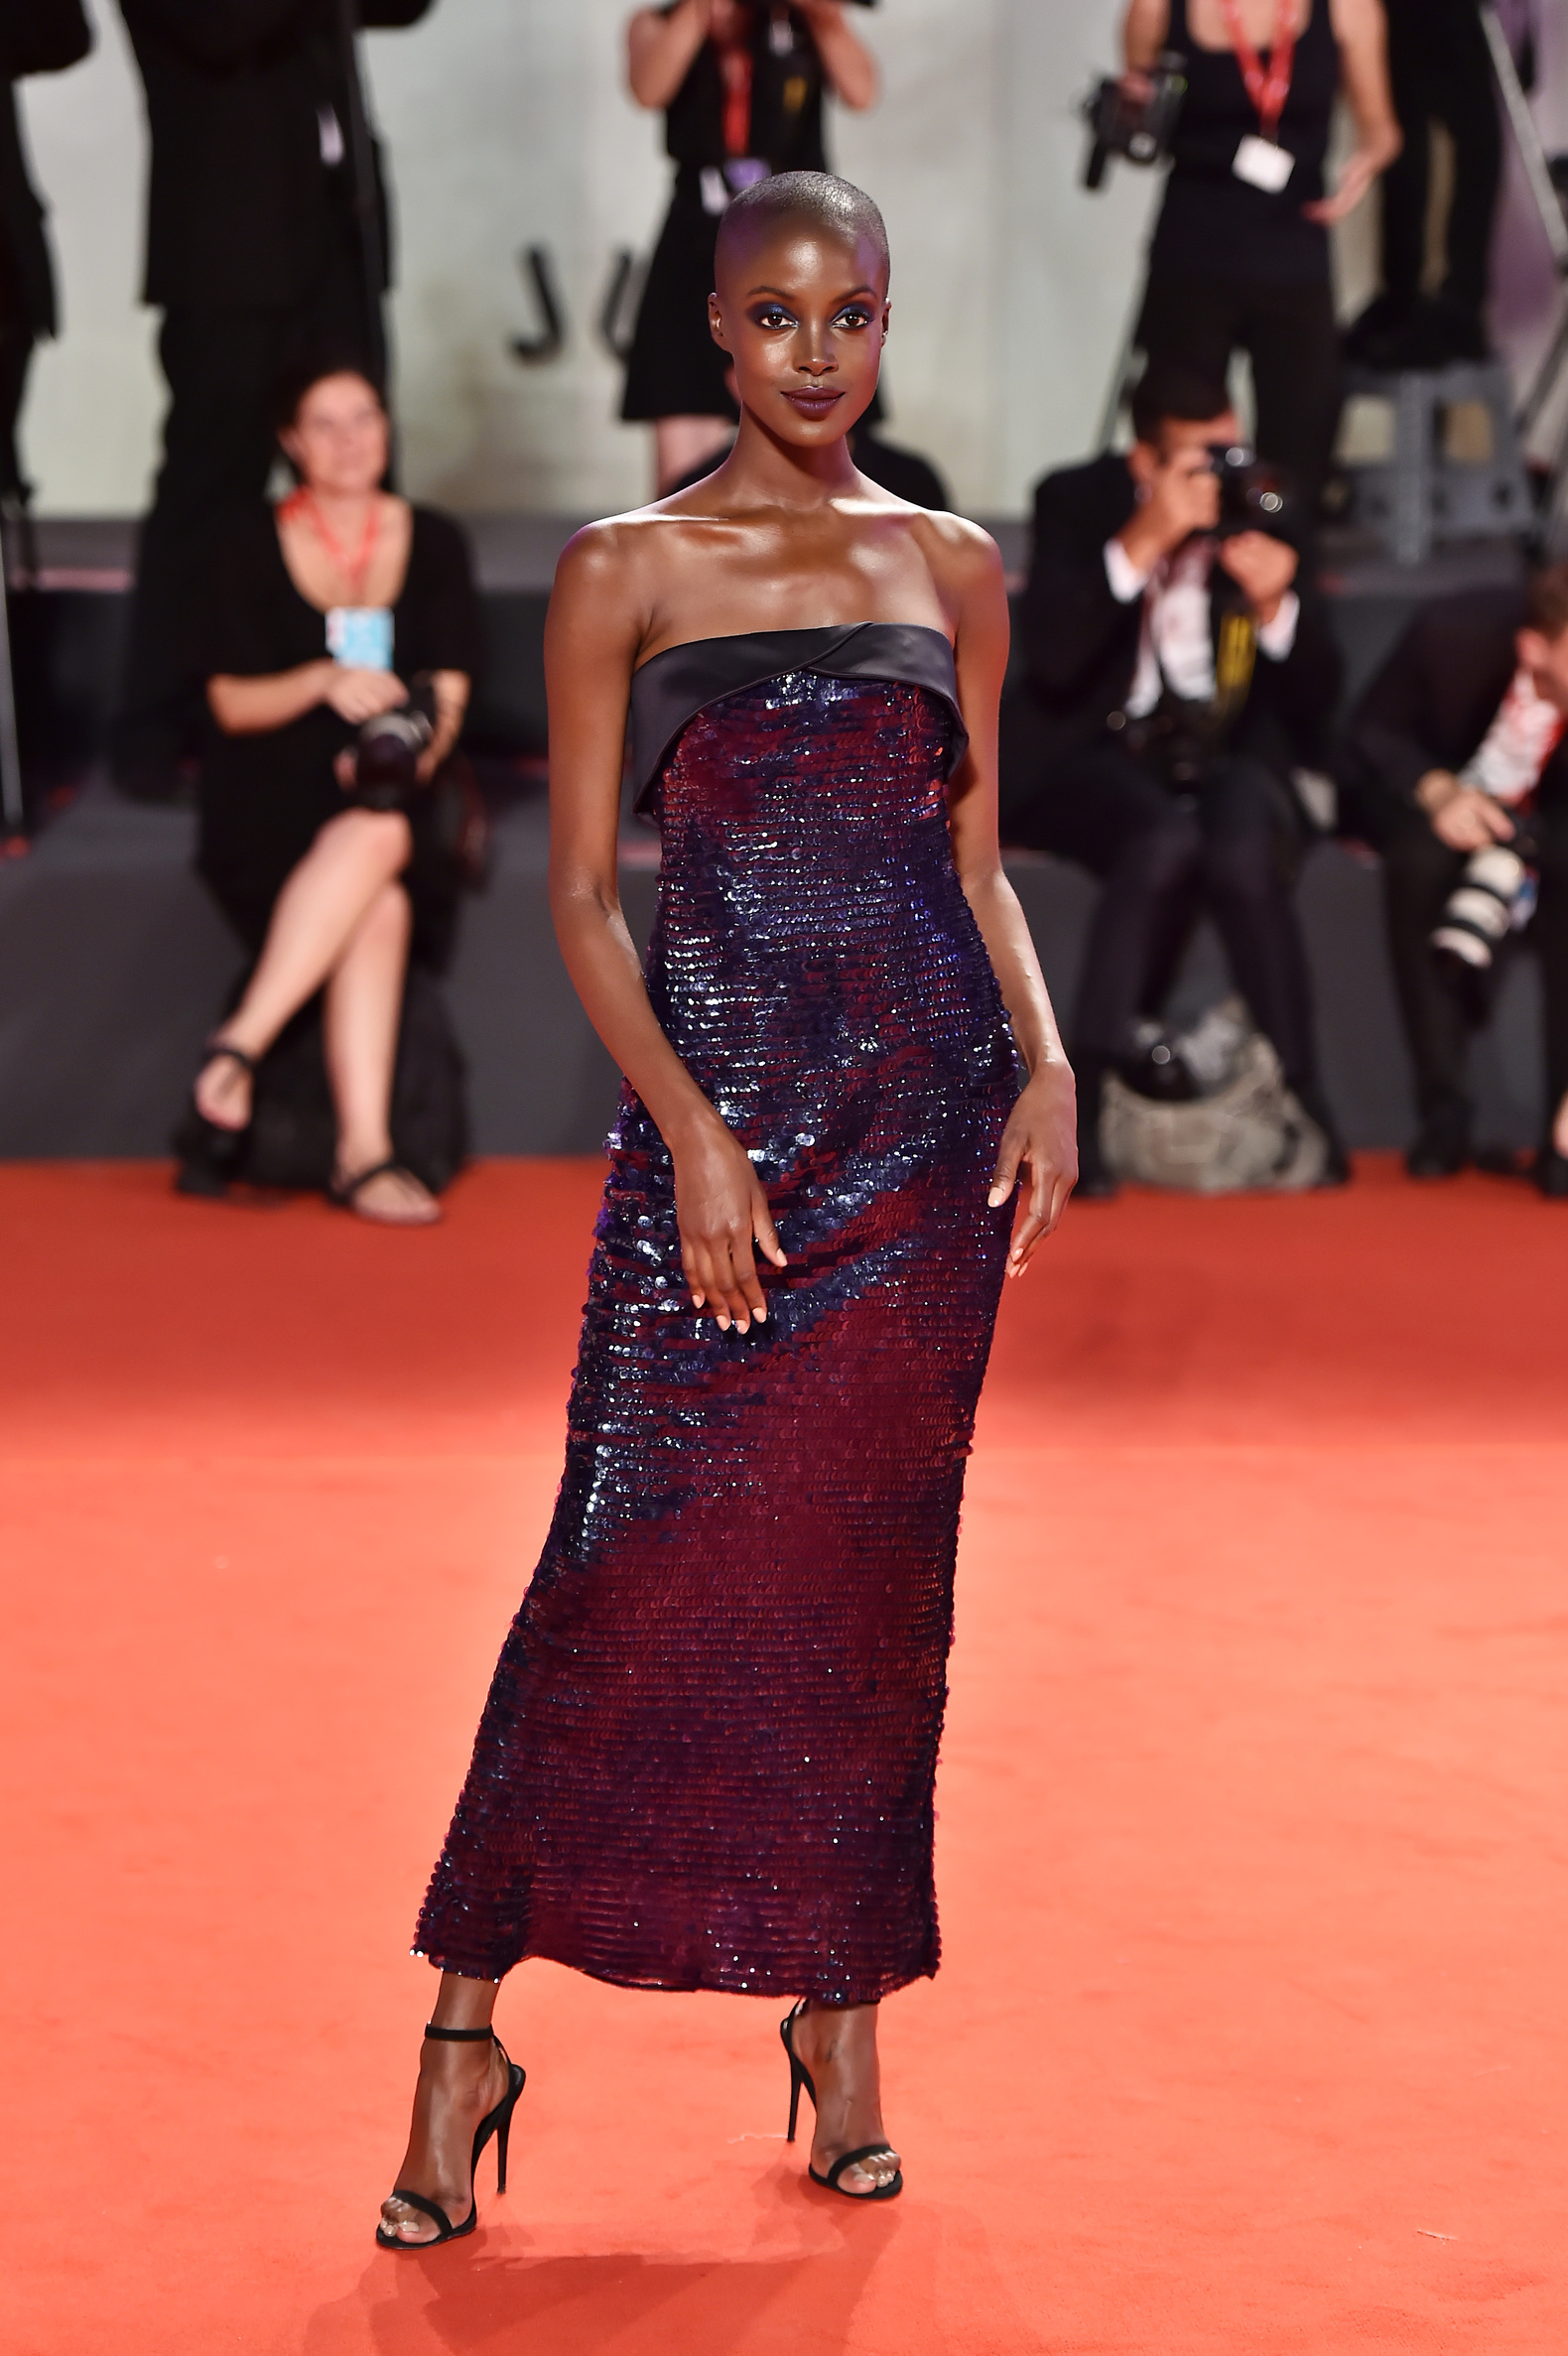 VENICE, ITALY - AUGUST 30: Madisin Rian walks the red carpet ahead of the